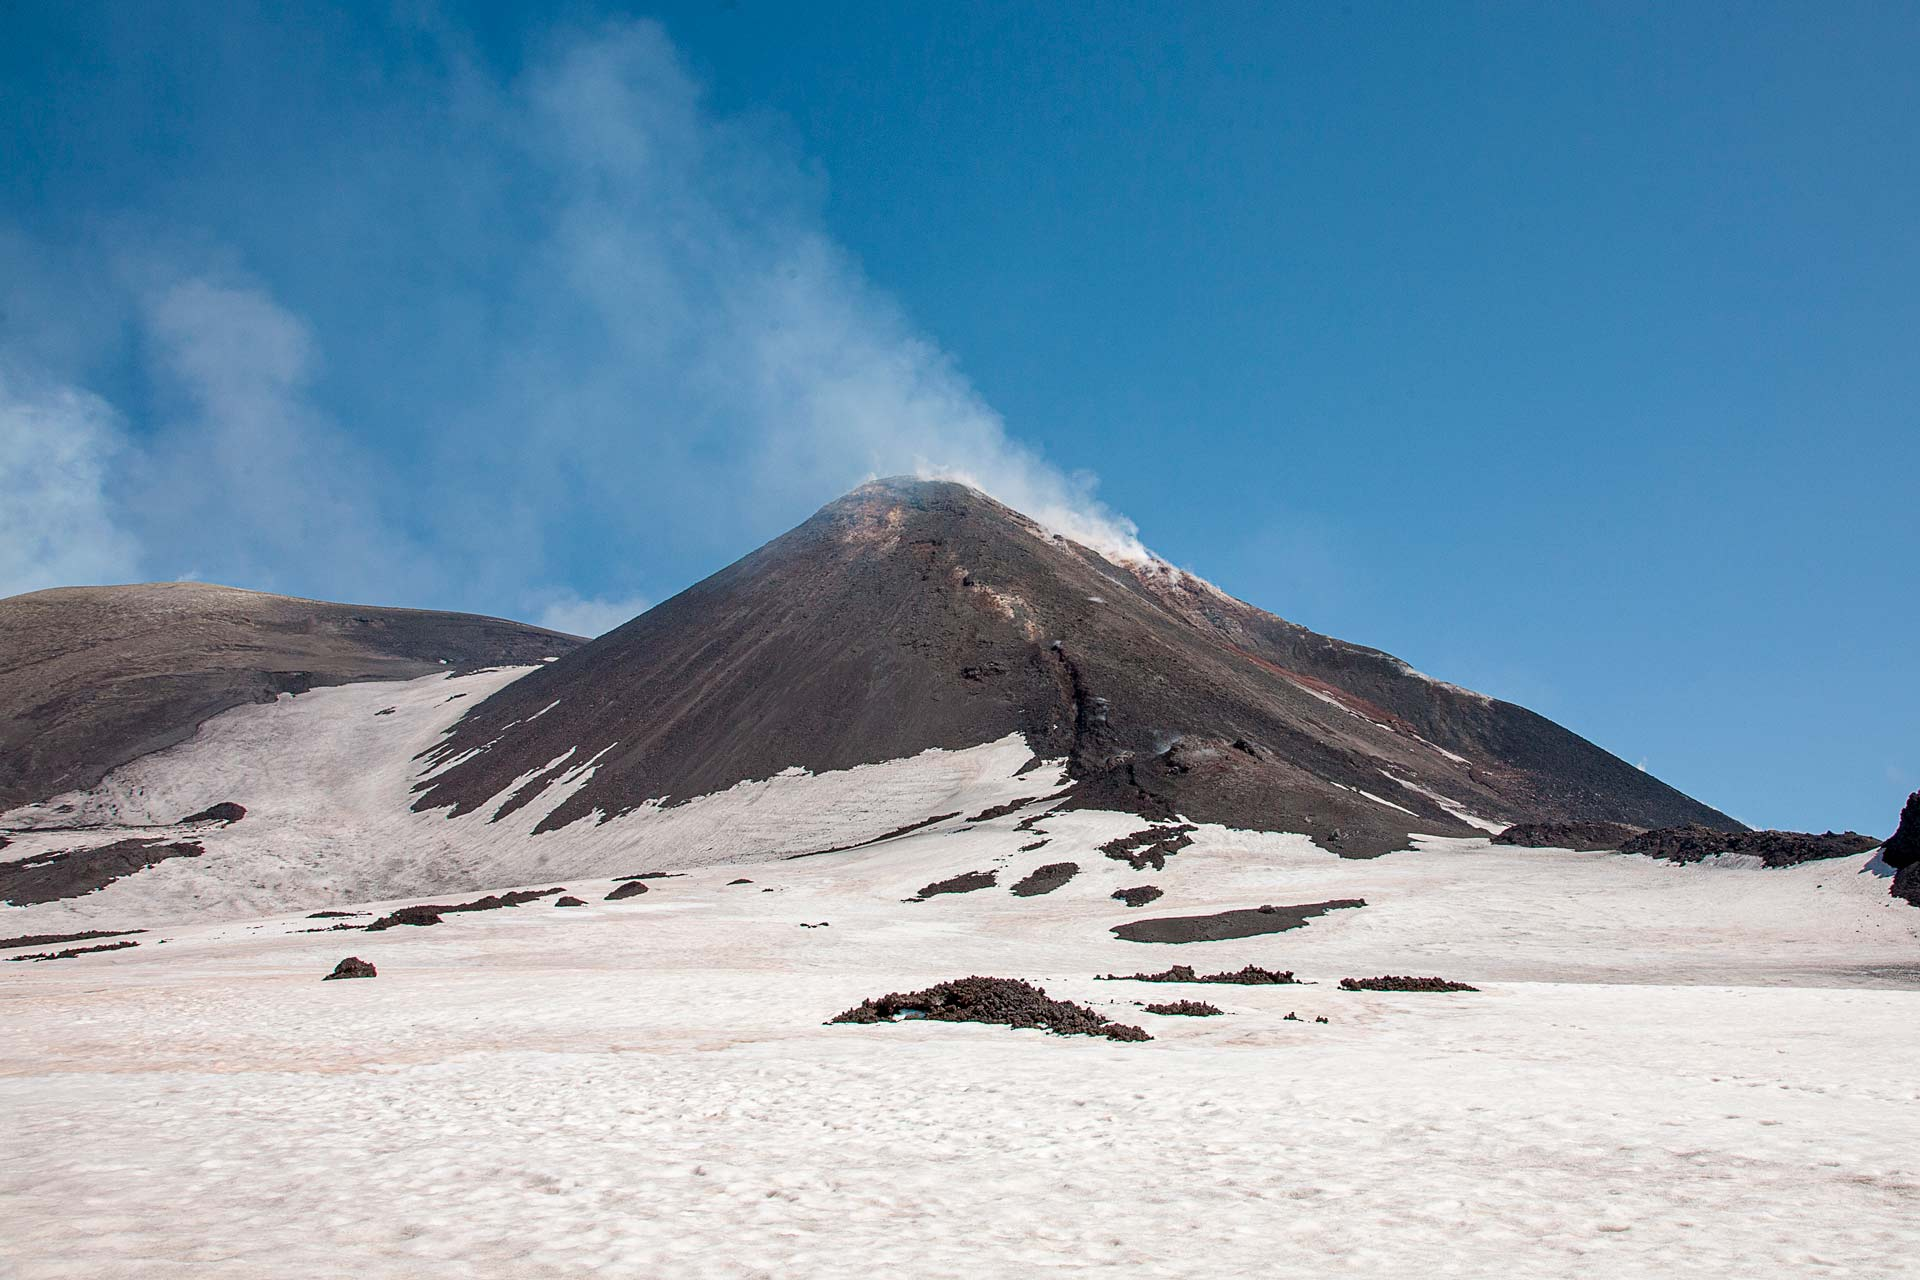 """The clear cloud that emerges from the top of the craters is a clear sign of tranquility for the people who live on the slopes of the """"mountain"""". In fact, man since he has inhabited these regions looks with fear at the dark cloud that comes out from the top of the mountain, a disturbing plume that can reach tens of kilometers and plunge cities and villages into deep darkness."""